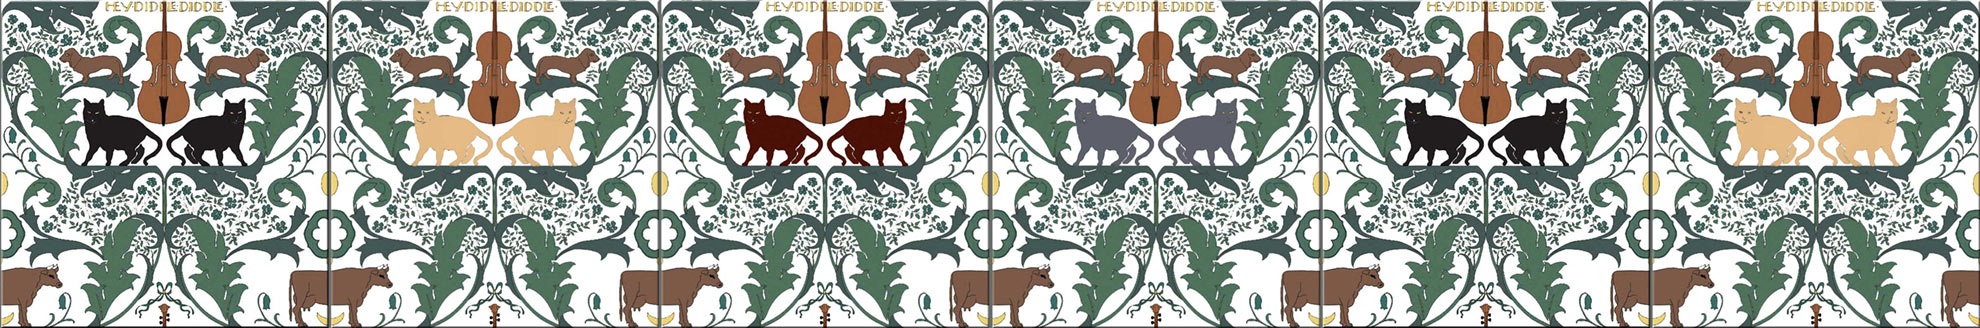 CFA Voysey tiles: Hey Diddle Diddle tiles, with different cat colorways